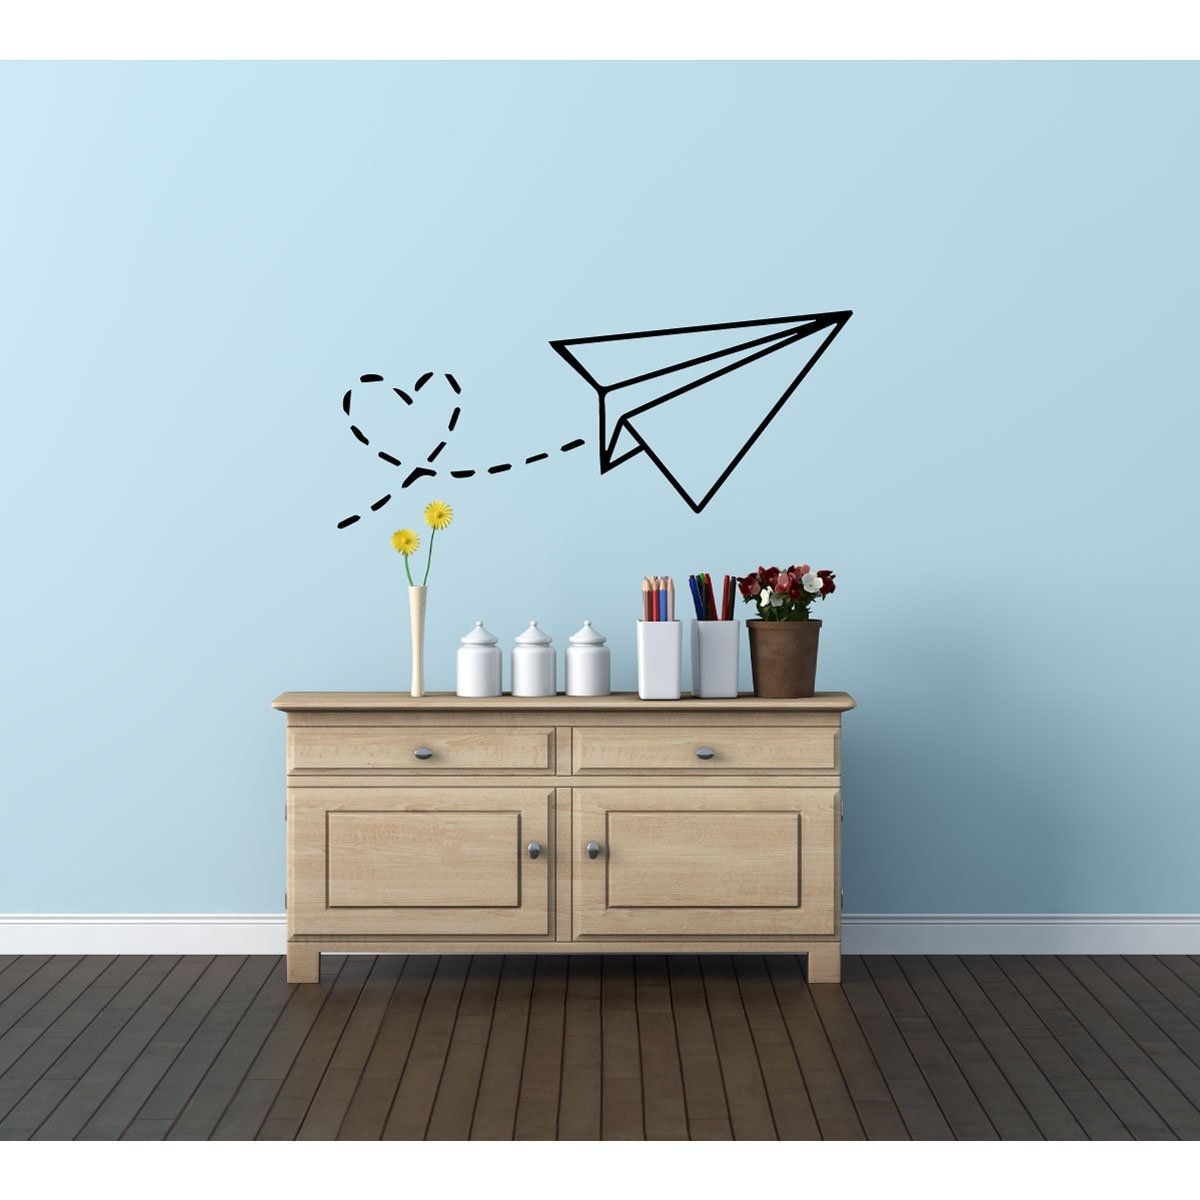 Wall Decals for Kids Rooms Vinyl Decor Wall Decal